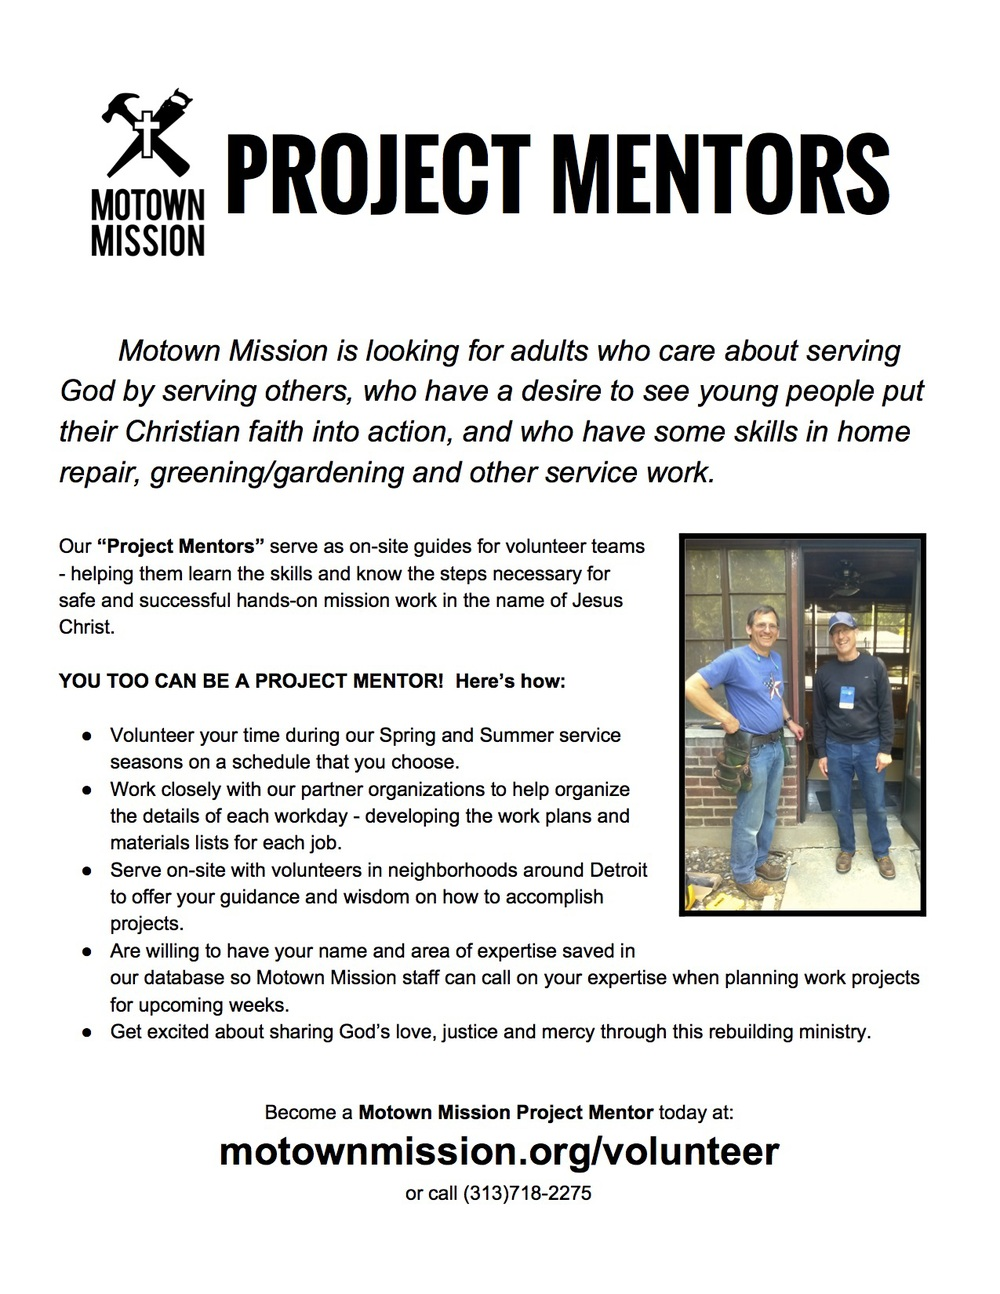 Click here to download this Project Mentors info sheet to share with other skilled persons in your church or community.